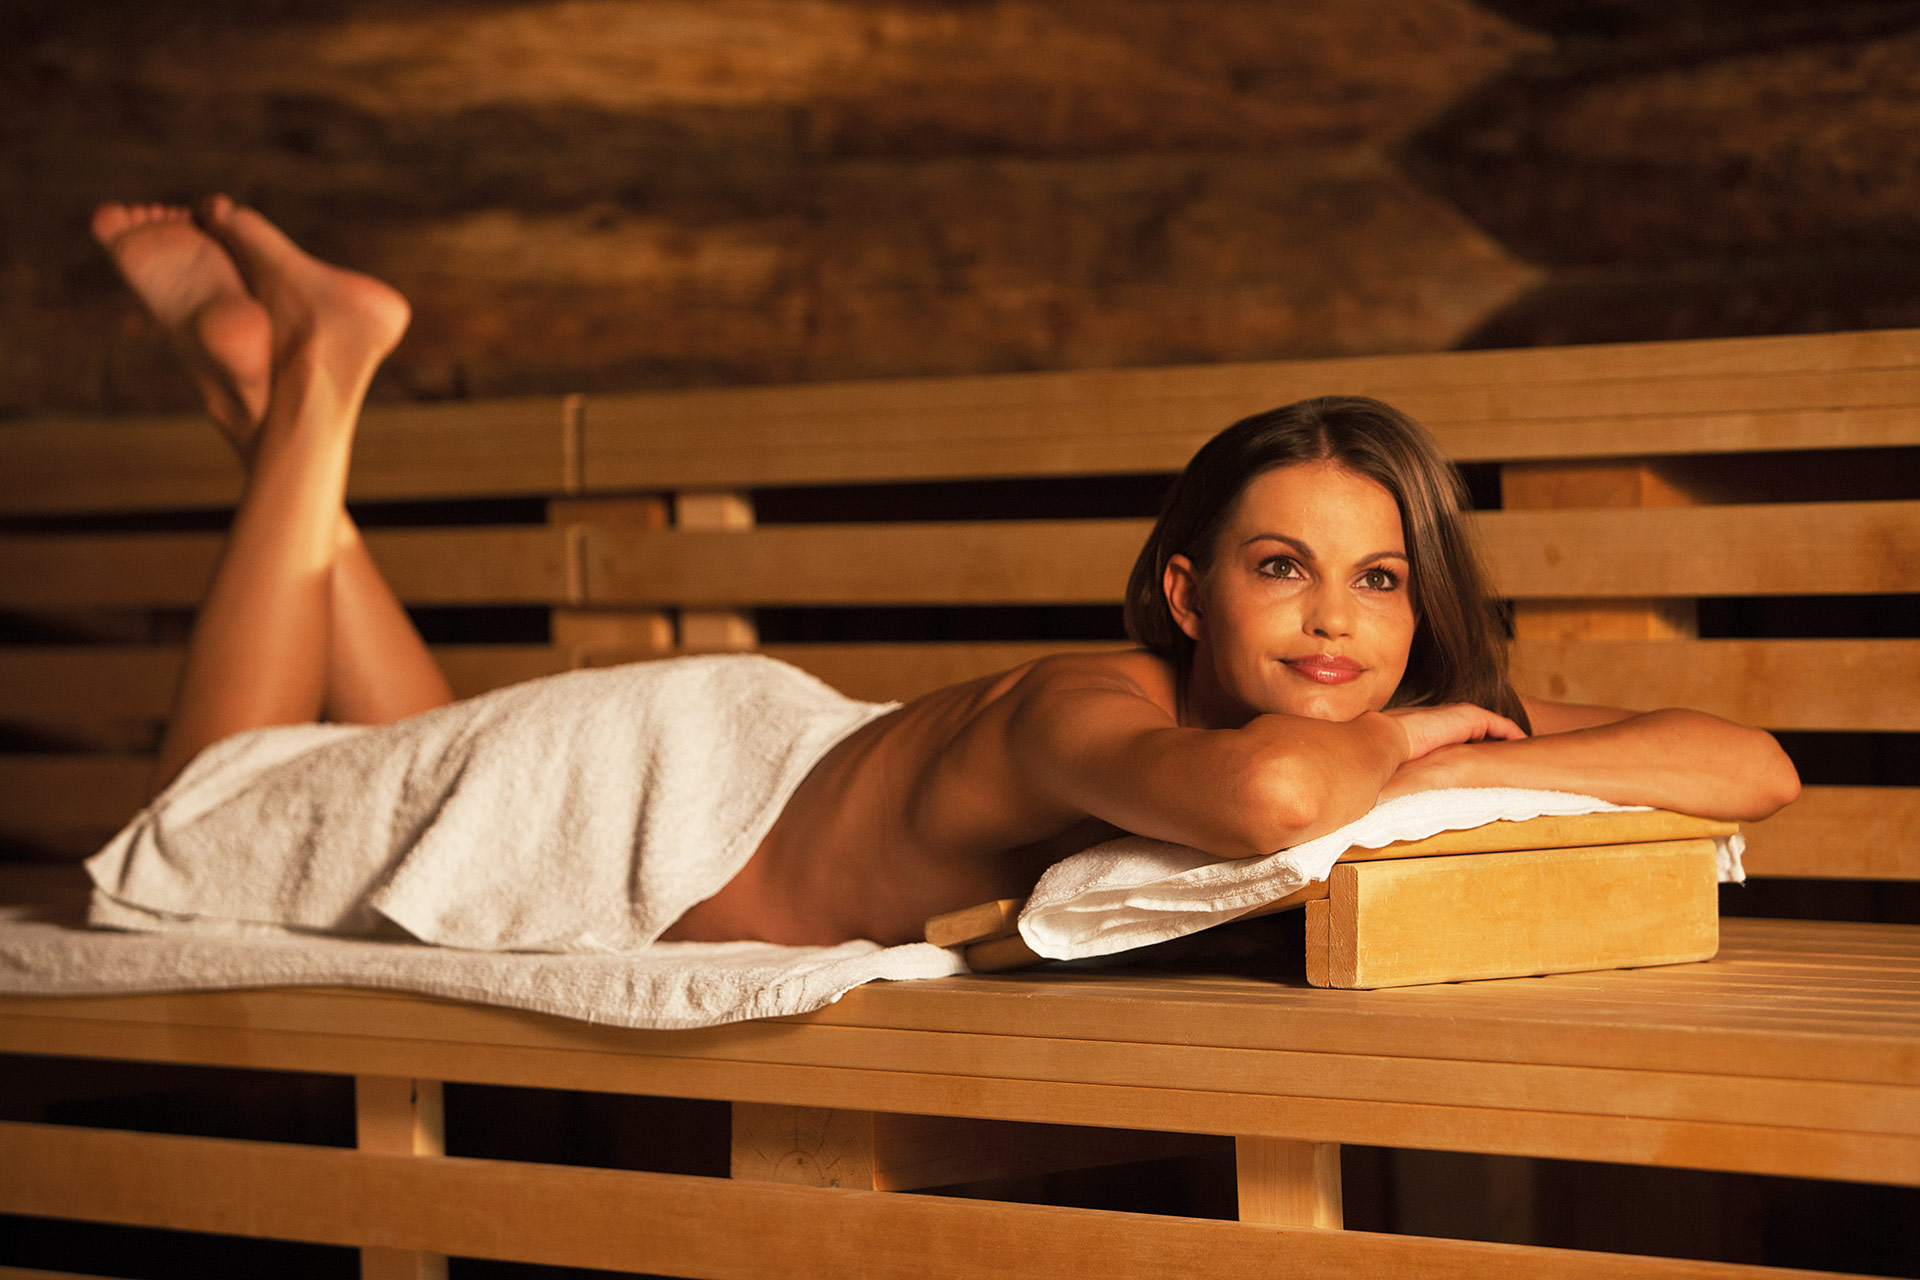 sauna therme wellness saunalandschaft leipzig. Black Bedroom Furniture Sets. Home Design Ideas